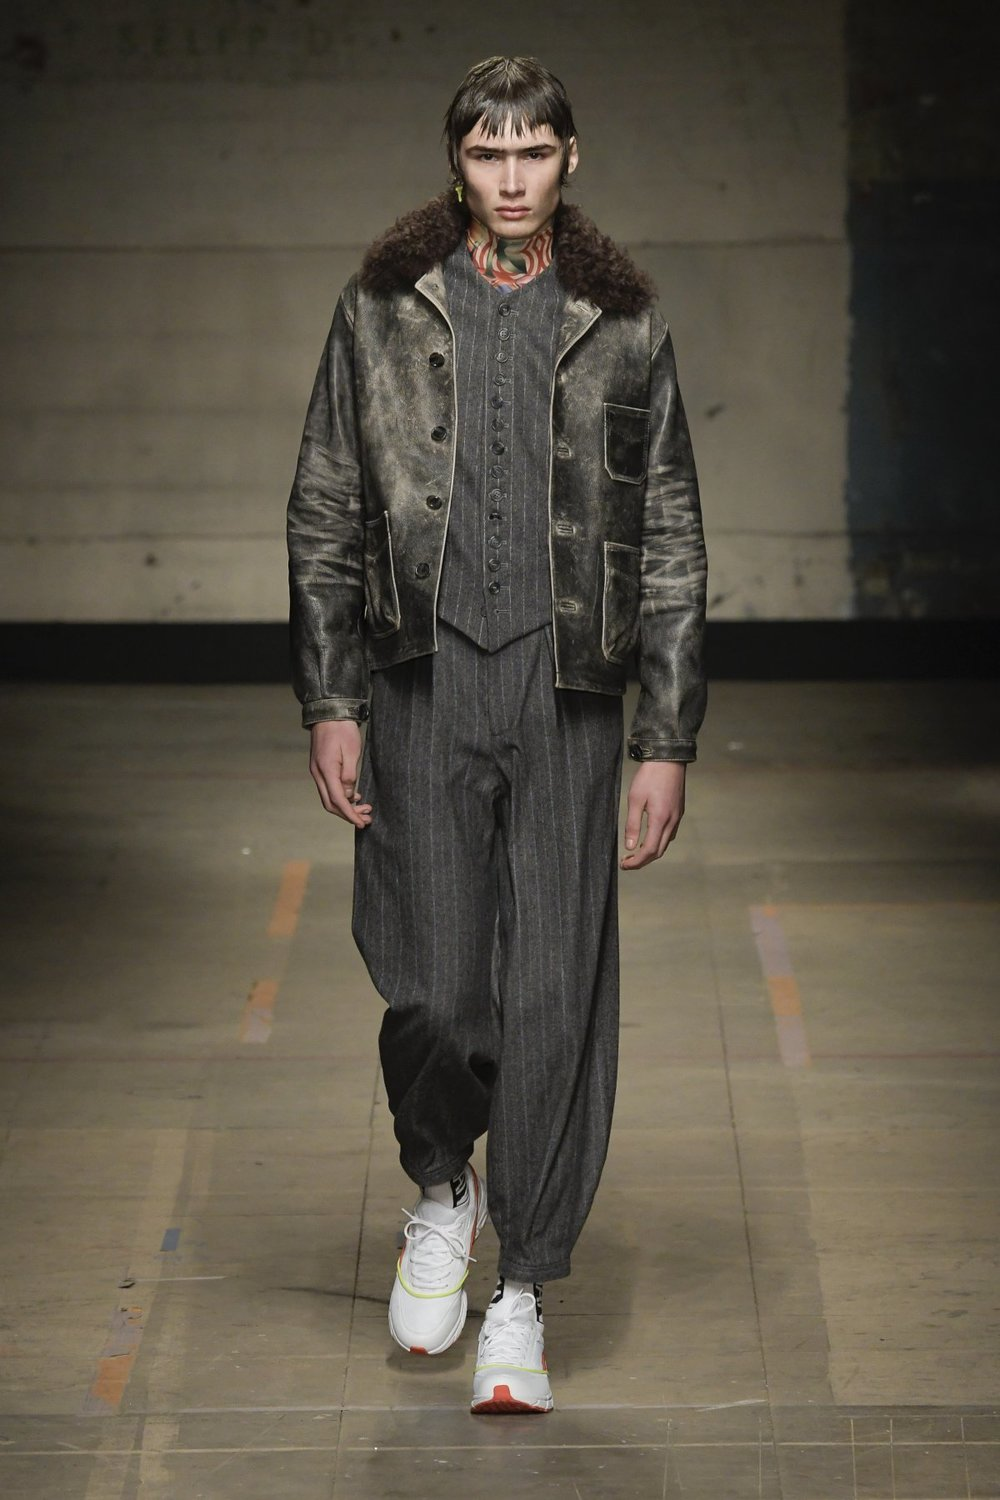 topman_design_look_1_2017_aw_mens.jpeg